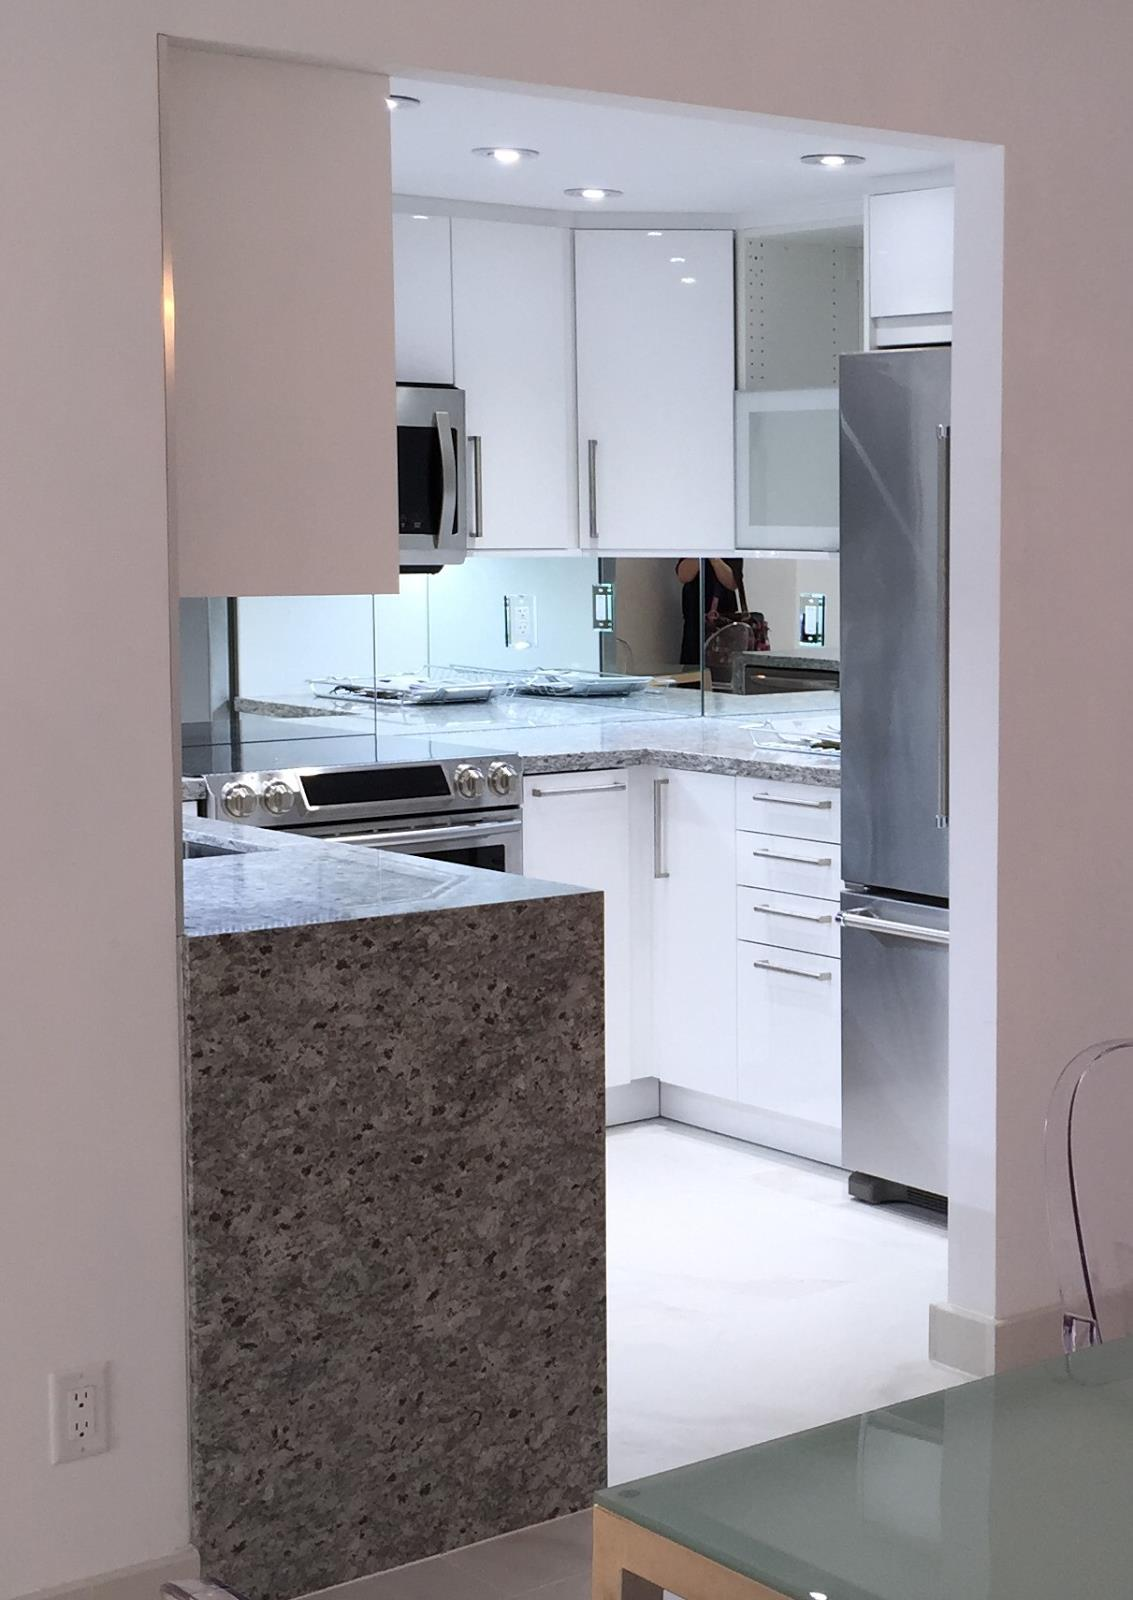 Kitchen Cabinet Warranty Ikea This Ikea Kitchen Is A Small Wonder Thanks To Ikd Magic